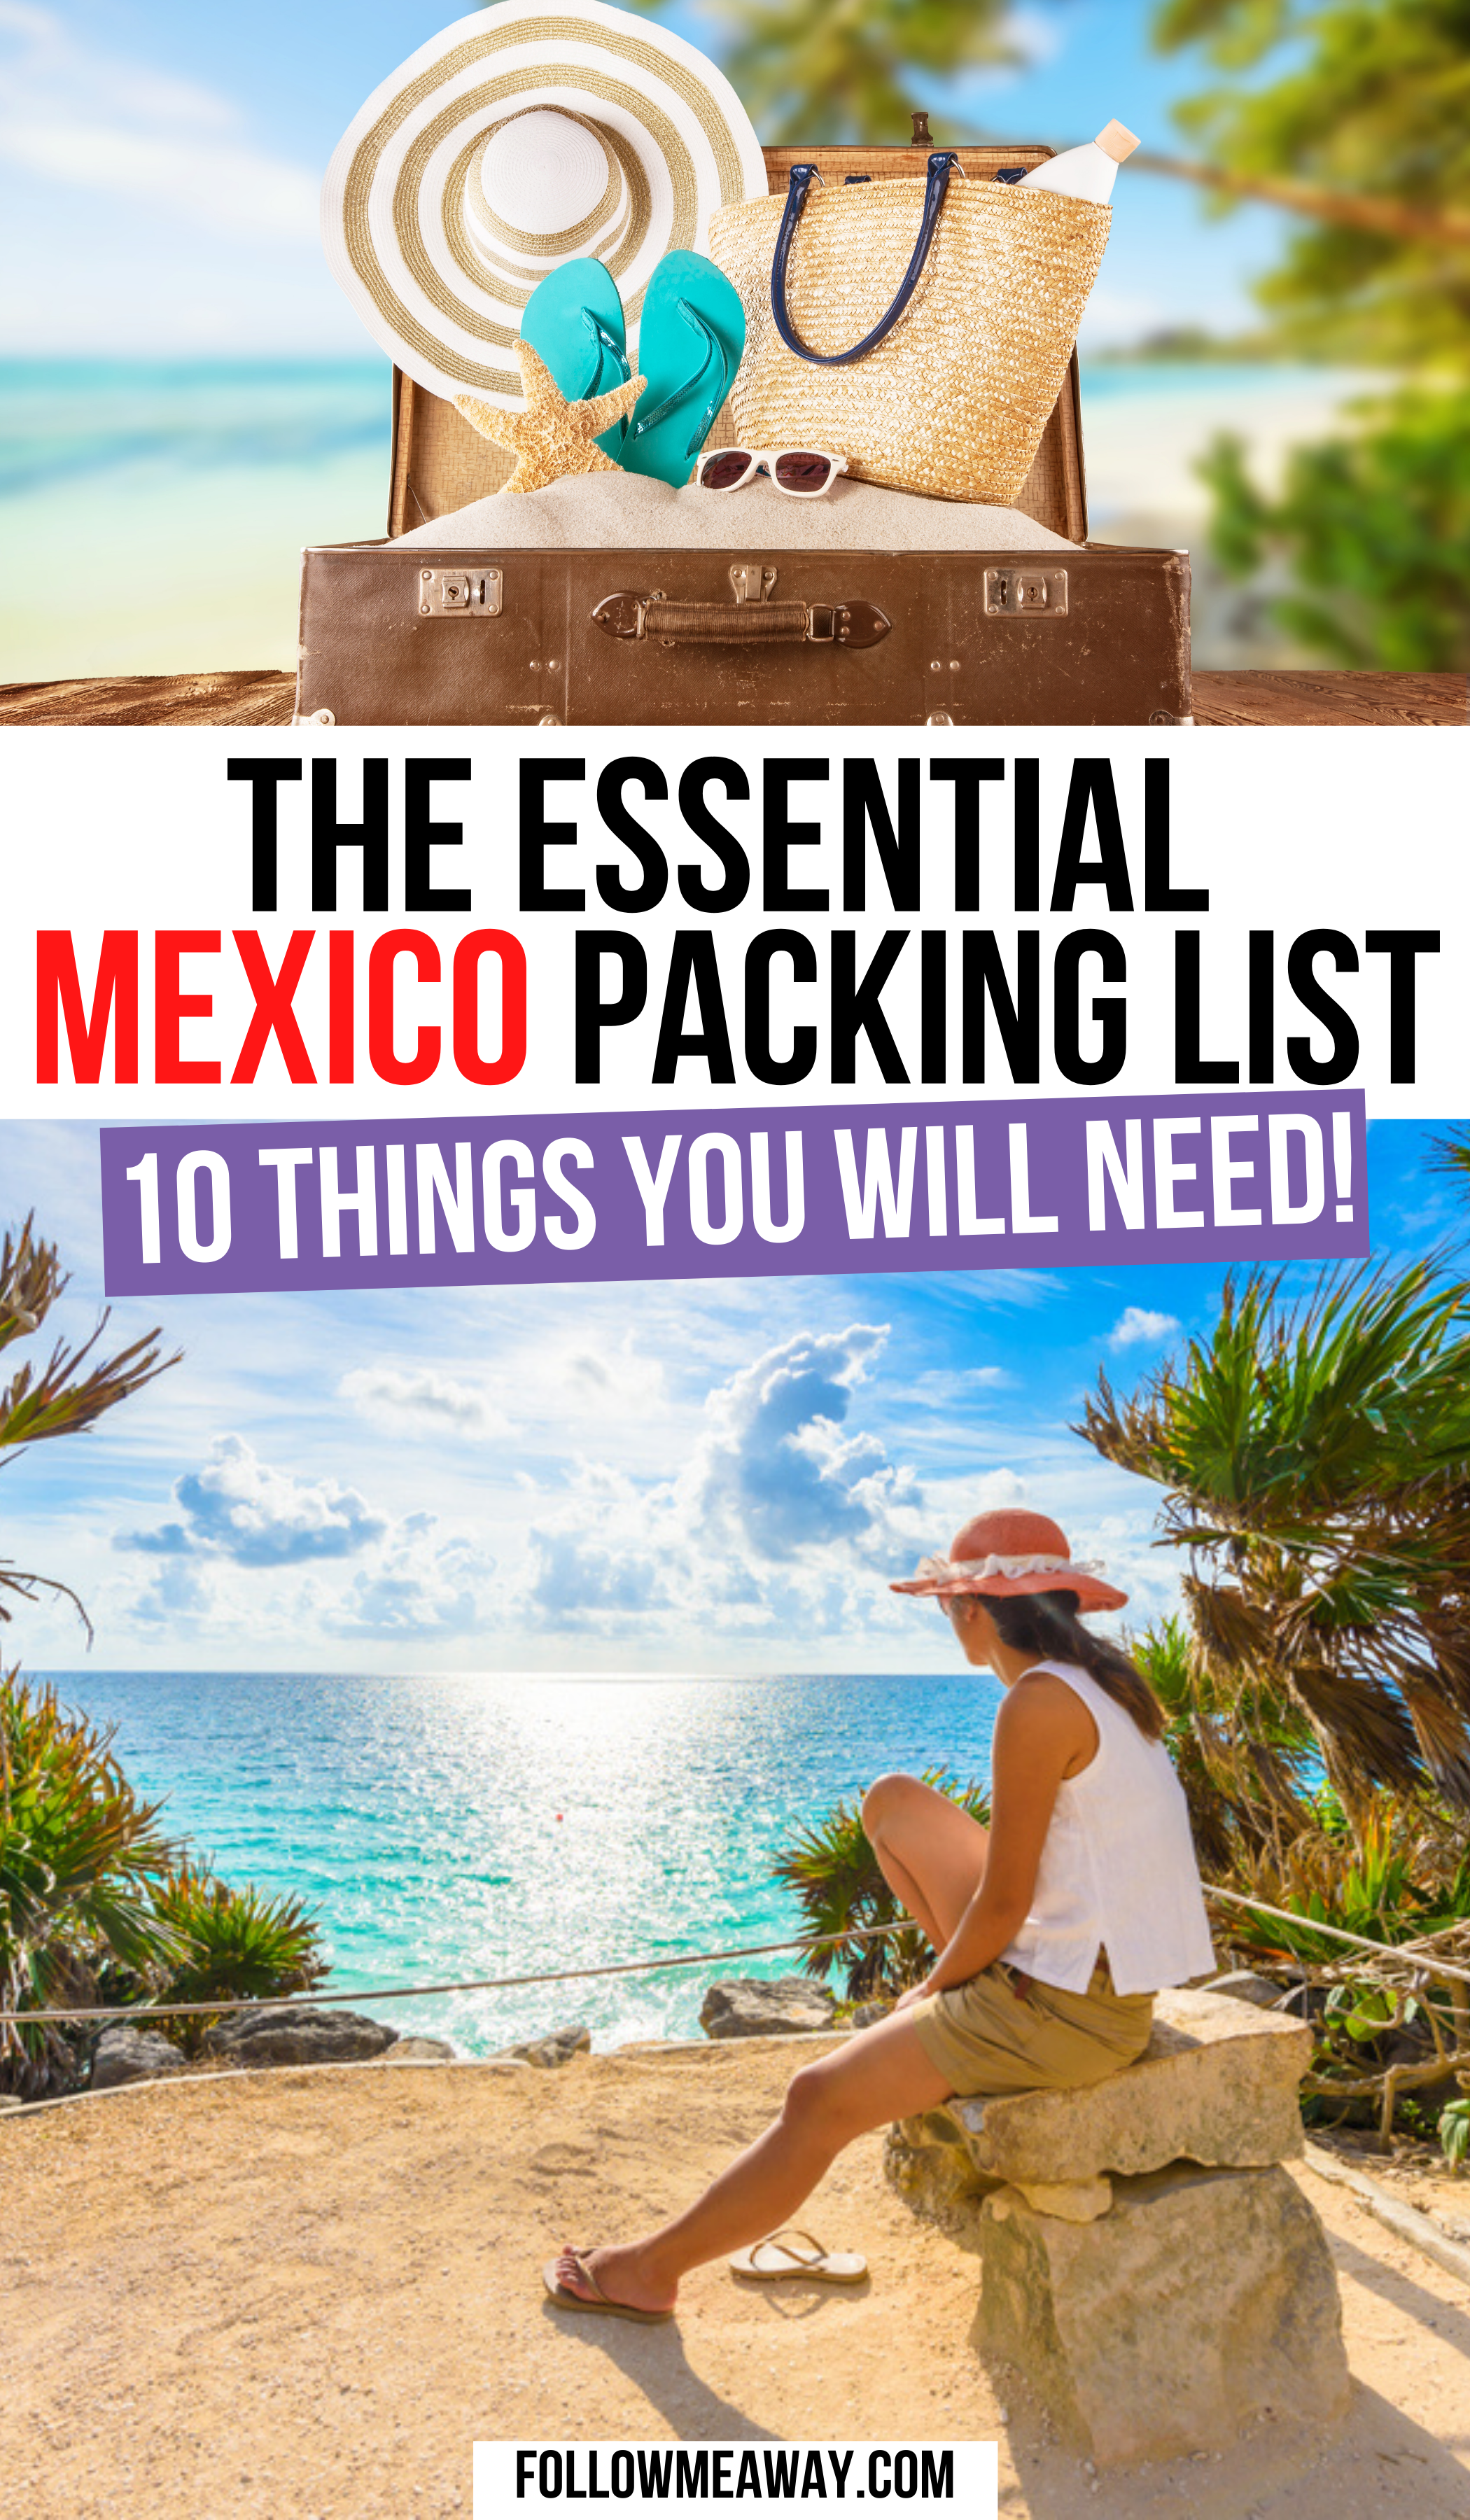 Mexico Packing List: 10 Things You Are FORGETTING To Bring | Mexico packing list | mexico packing list riviera Maya | mexico packing list cancun | mexico packing list Puerto vallarta | traveling to mexico packing lists | trip to mexico packing lists | all inclusive mexico packing list | what to take to mexico packing lists | what to bring to mexico packing lists | vacation outfits mexico packing lists | #mexicotravel #mexicopackinglist